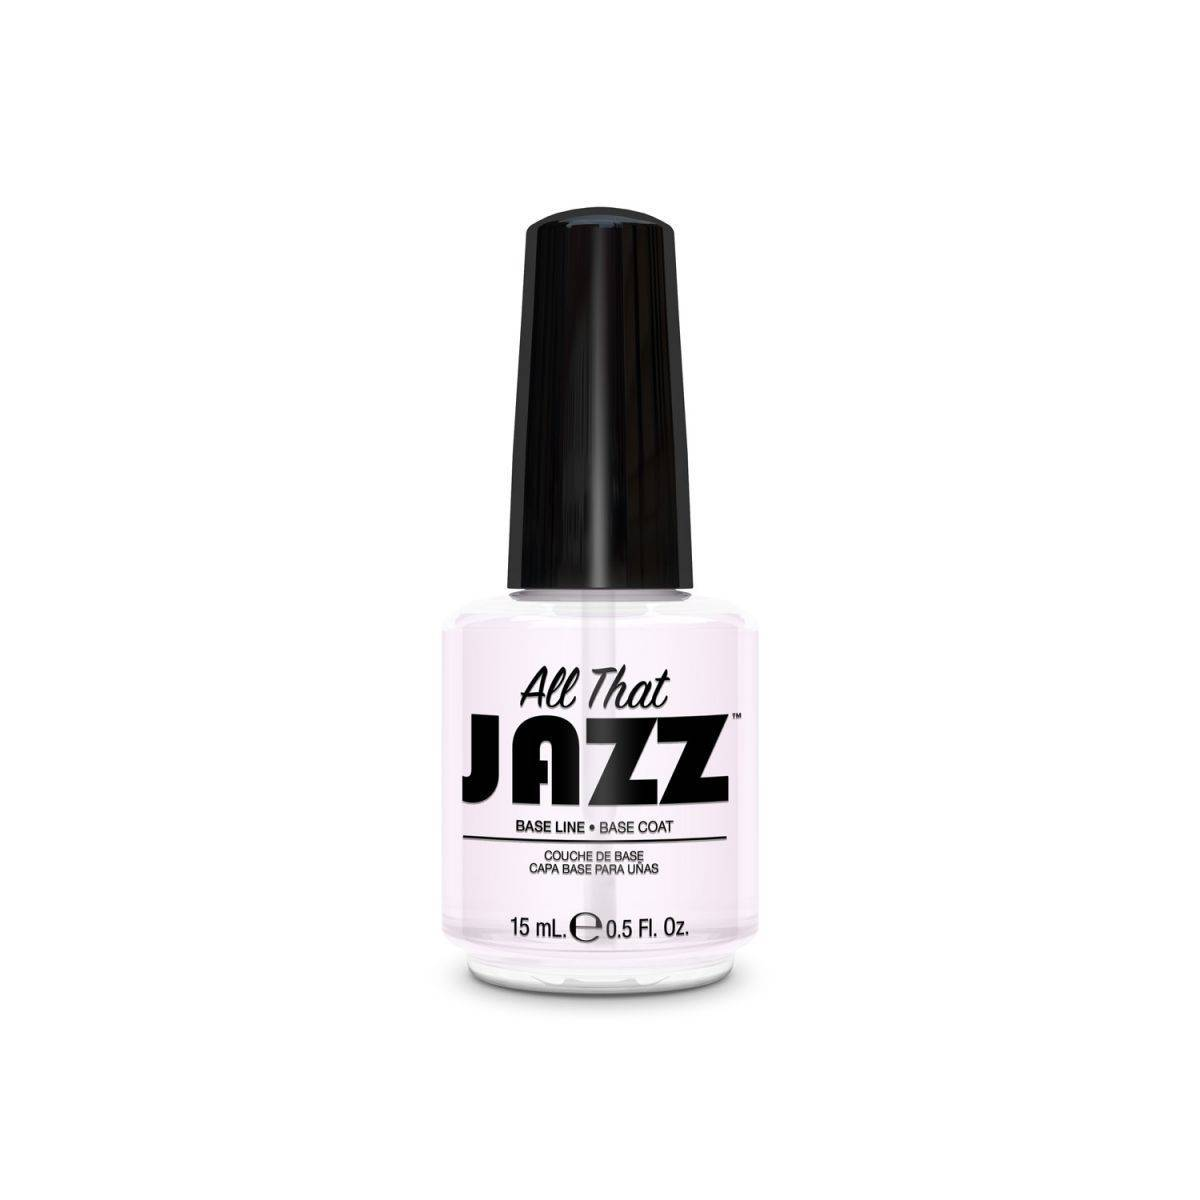 All That Jazz:Lacquer:Treatments:Base Line